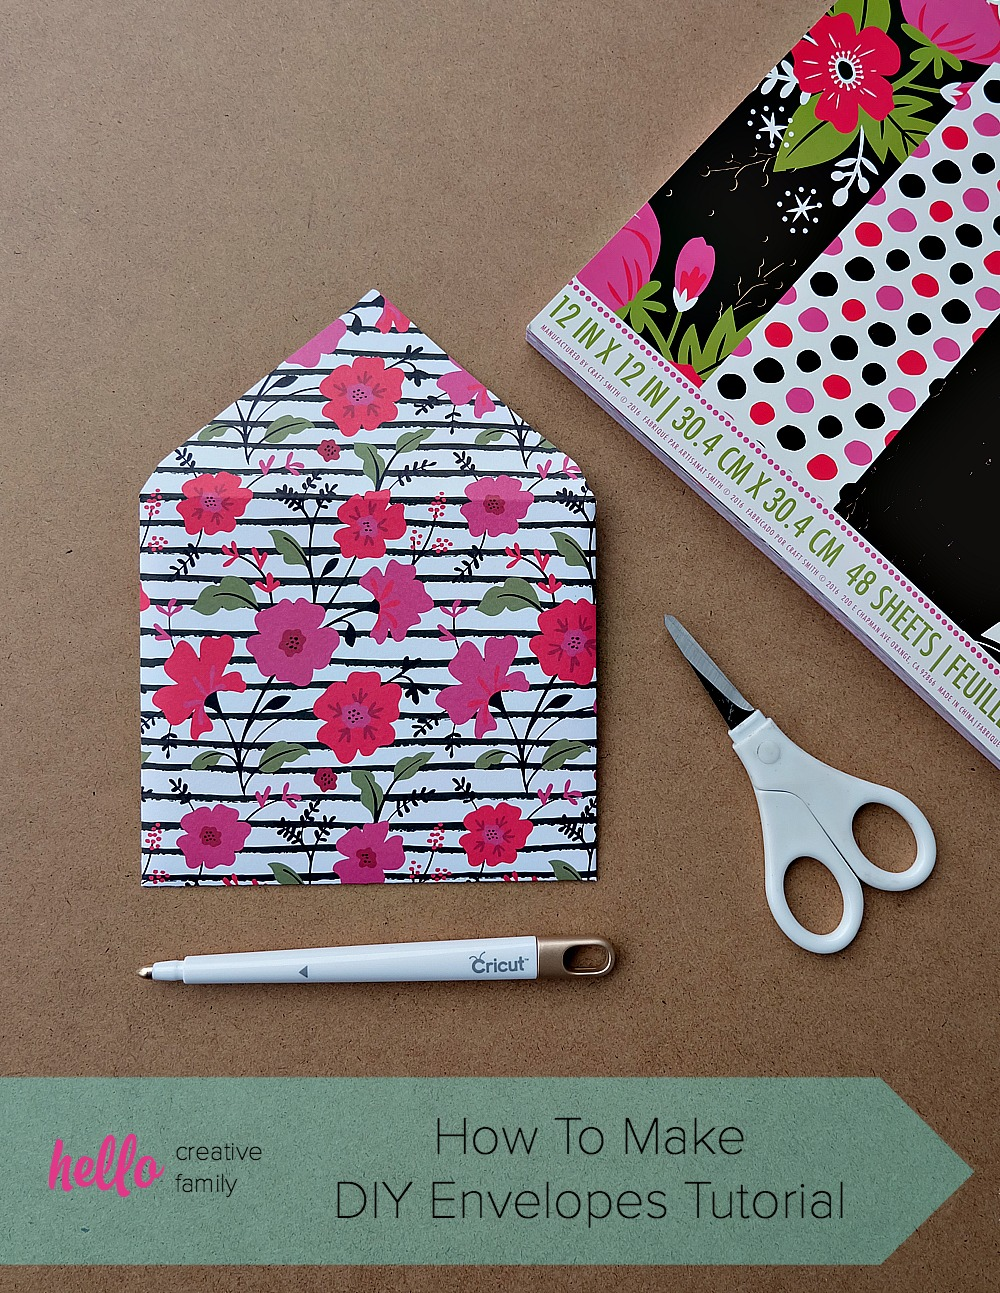 You'll want to hang onto old Christmas and Birthday card envelopes after reading this post! Upcycle old envelopes into envelope templates! Learn How To Make DIY Envelopes using scrapbooking paper and cardstock with this easy tutorial!